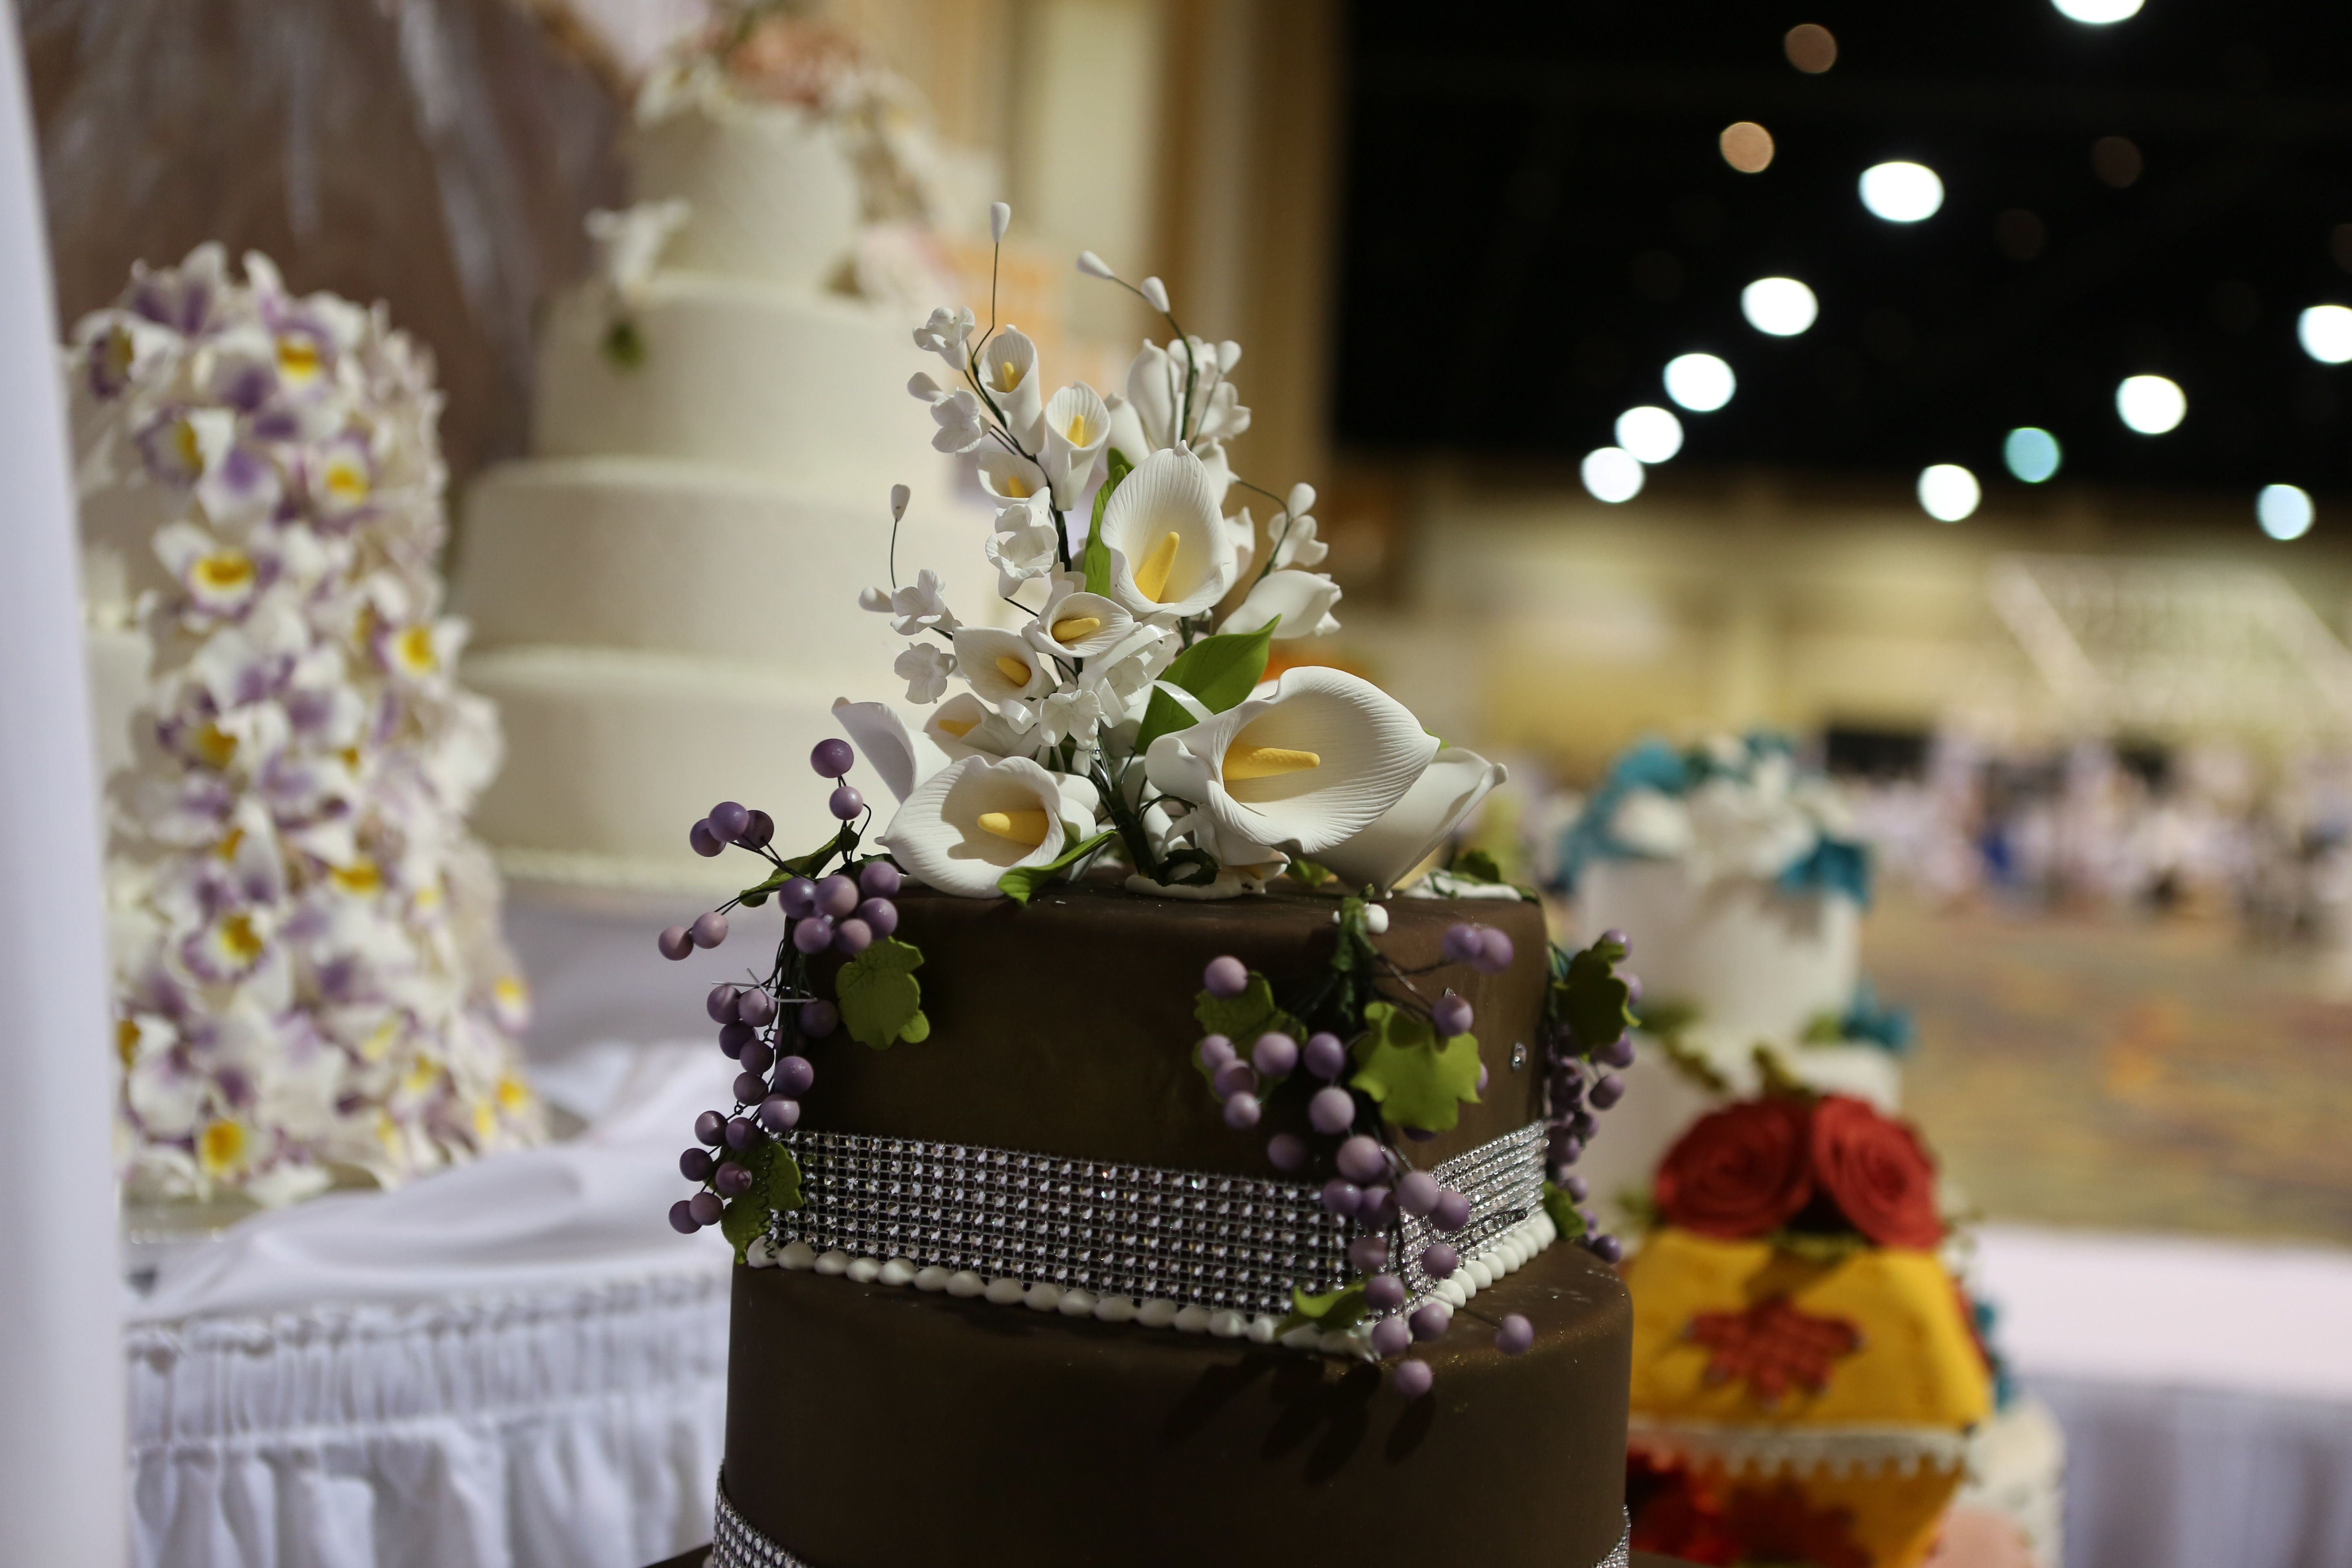 Beautiful bold #black #weddingcake from the #ORLPWGShow. How perfect is the topper with the berries! Can't wait to see even more cakes at the #wedding cake showdown June 22nd!